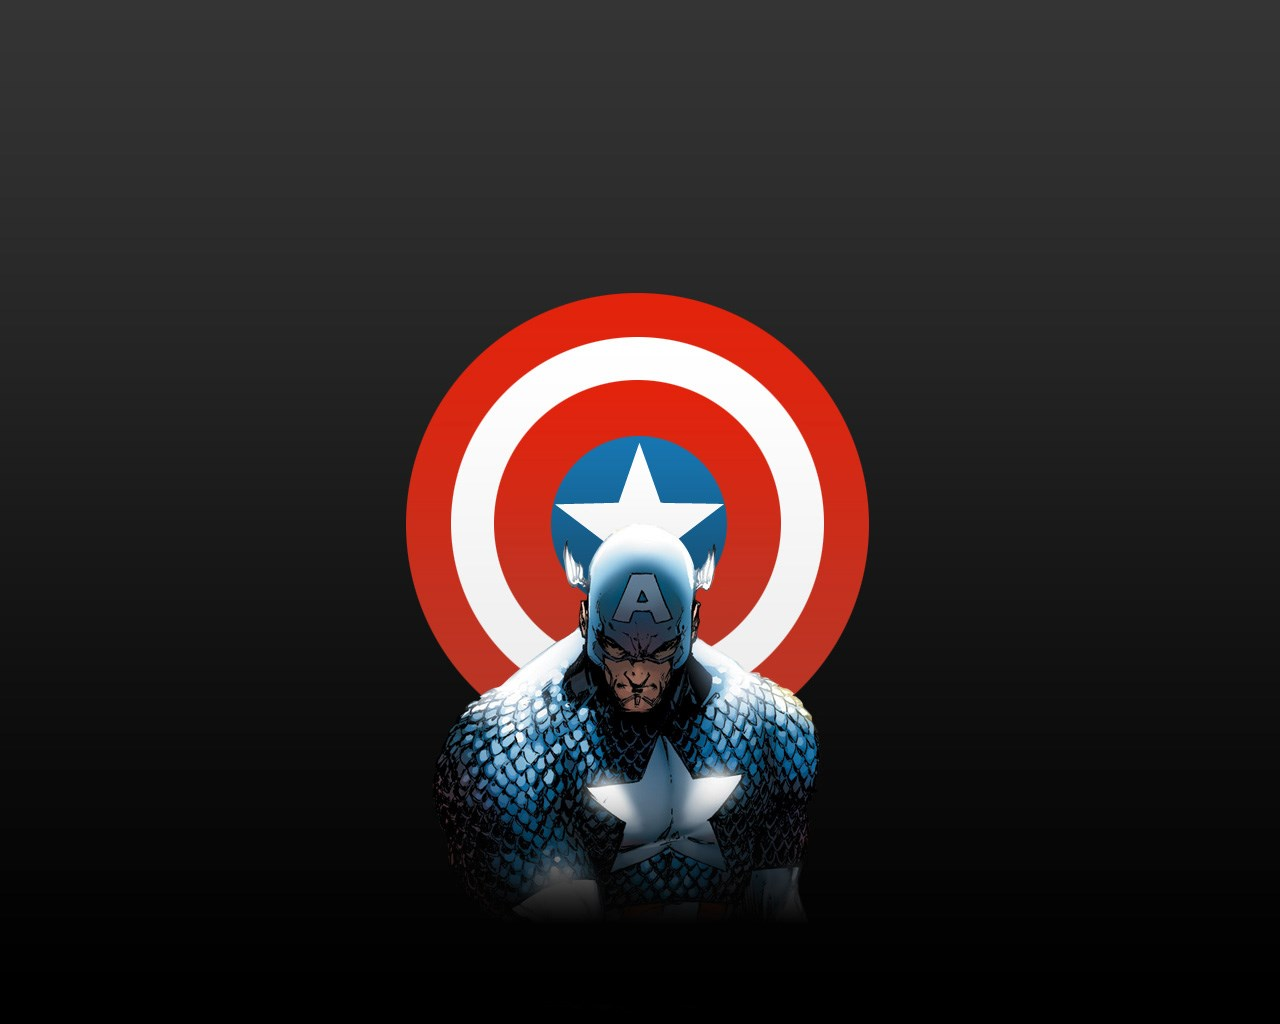 captain-america-1080p-high-quality-x-wallpaper-wpc9003335